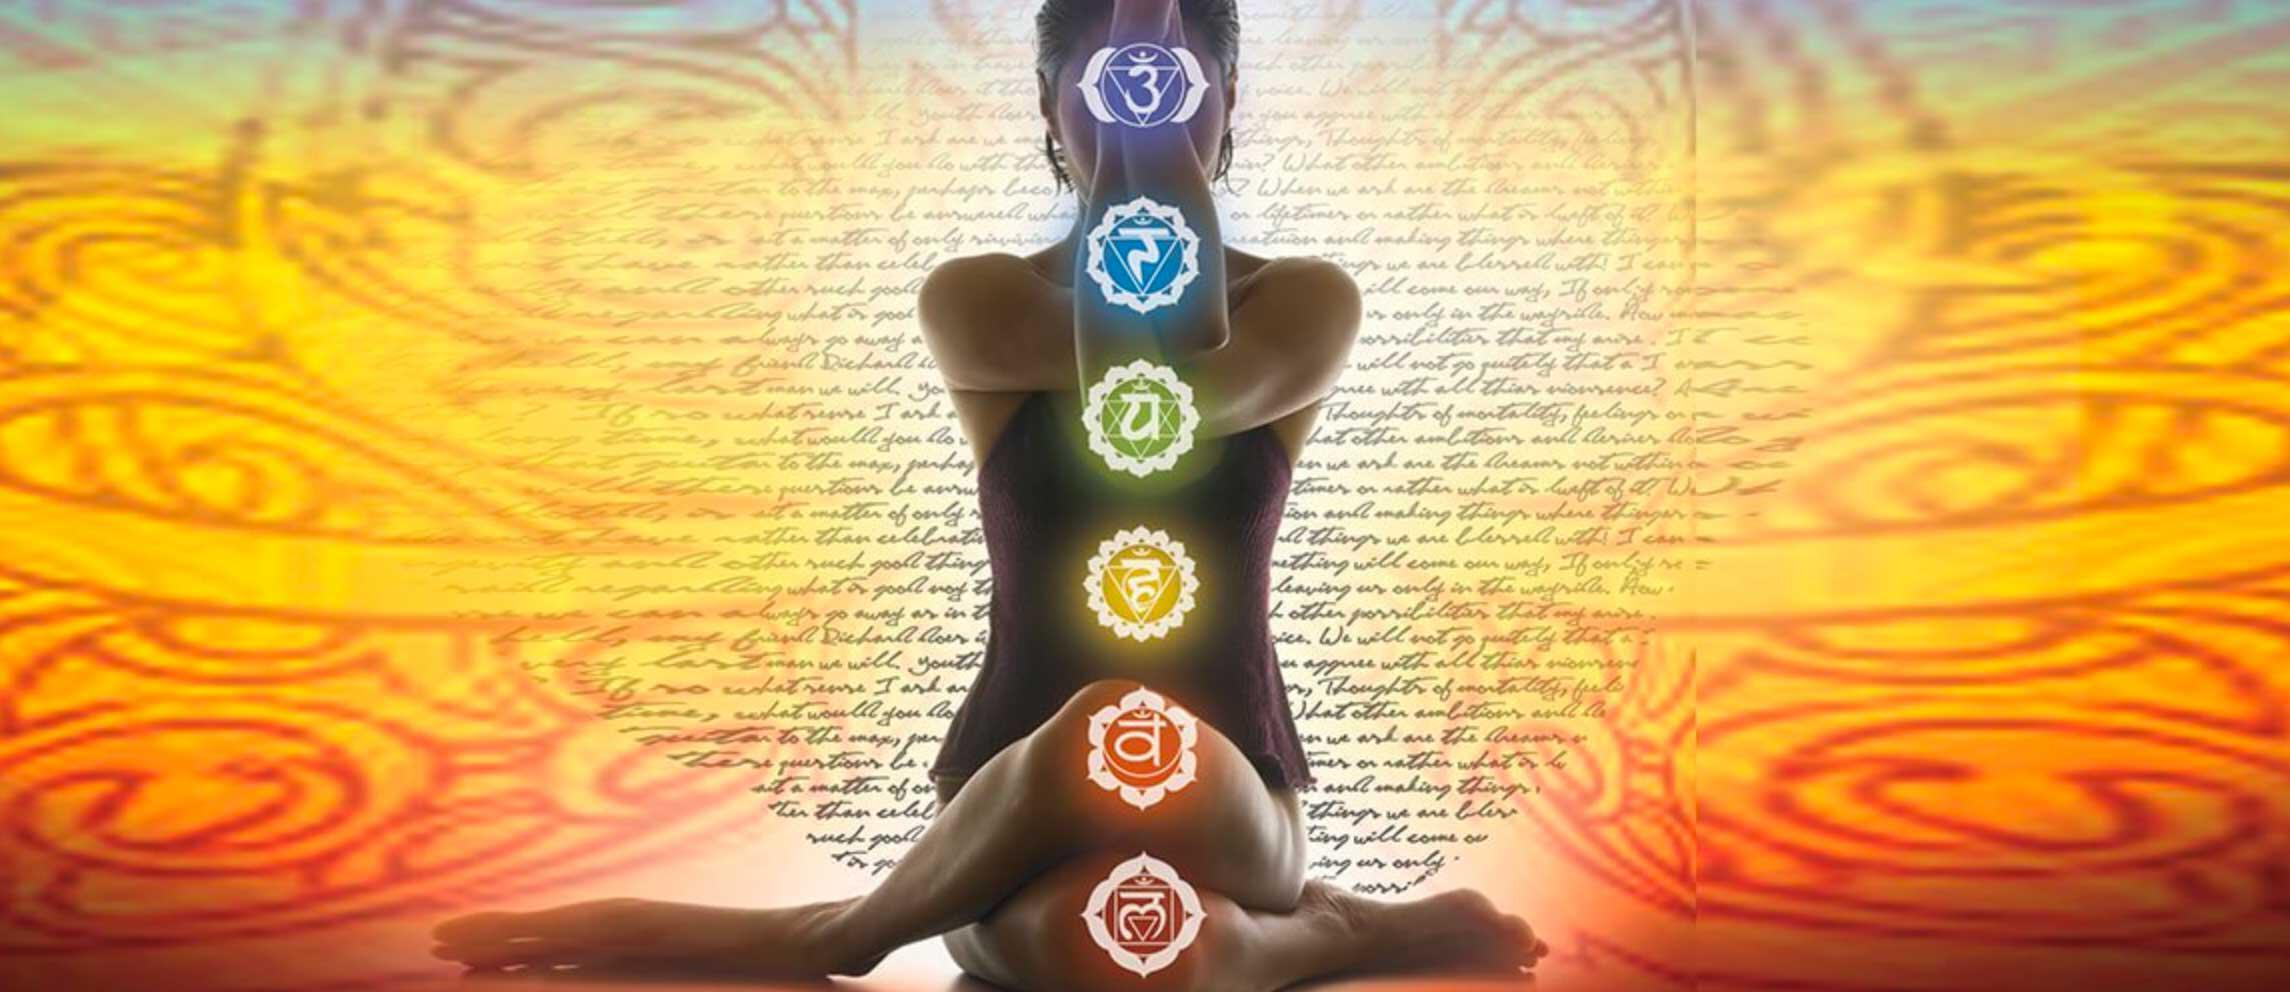 seminario sui chakra - chakra awakening workshop